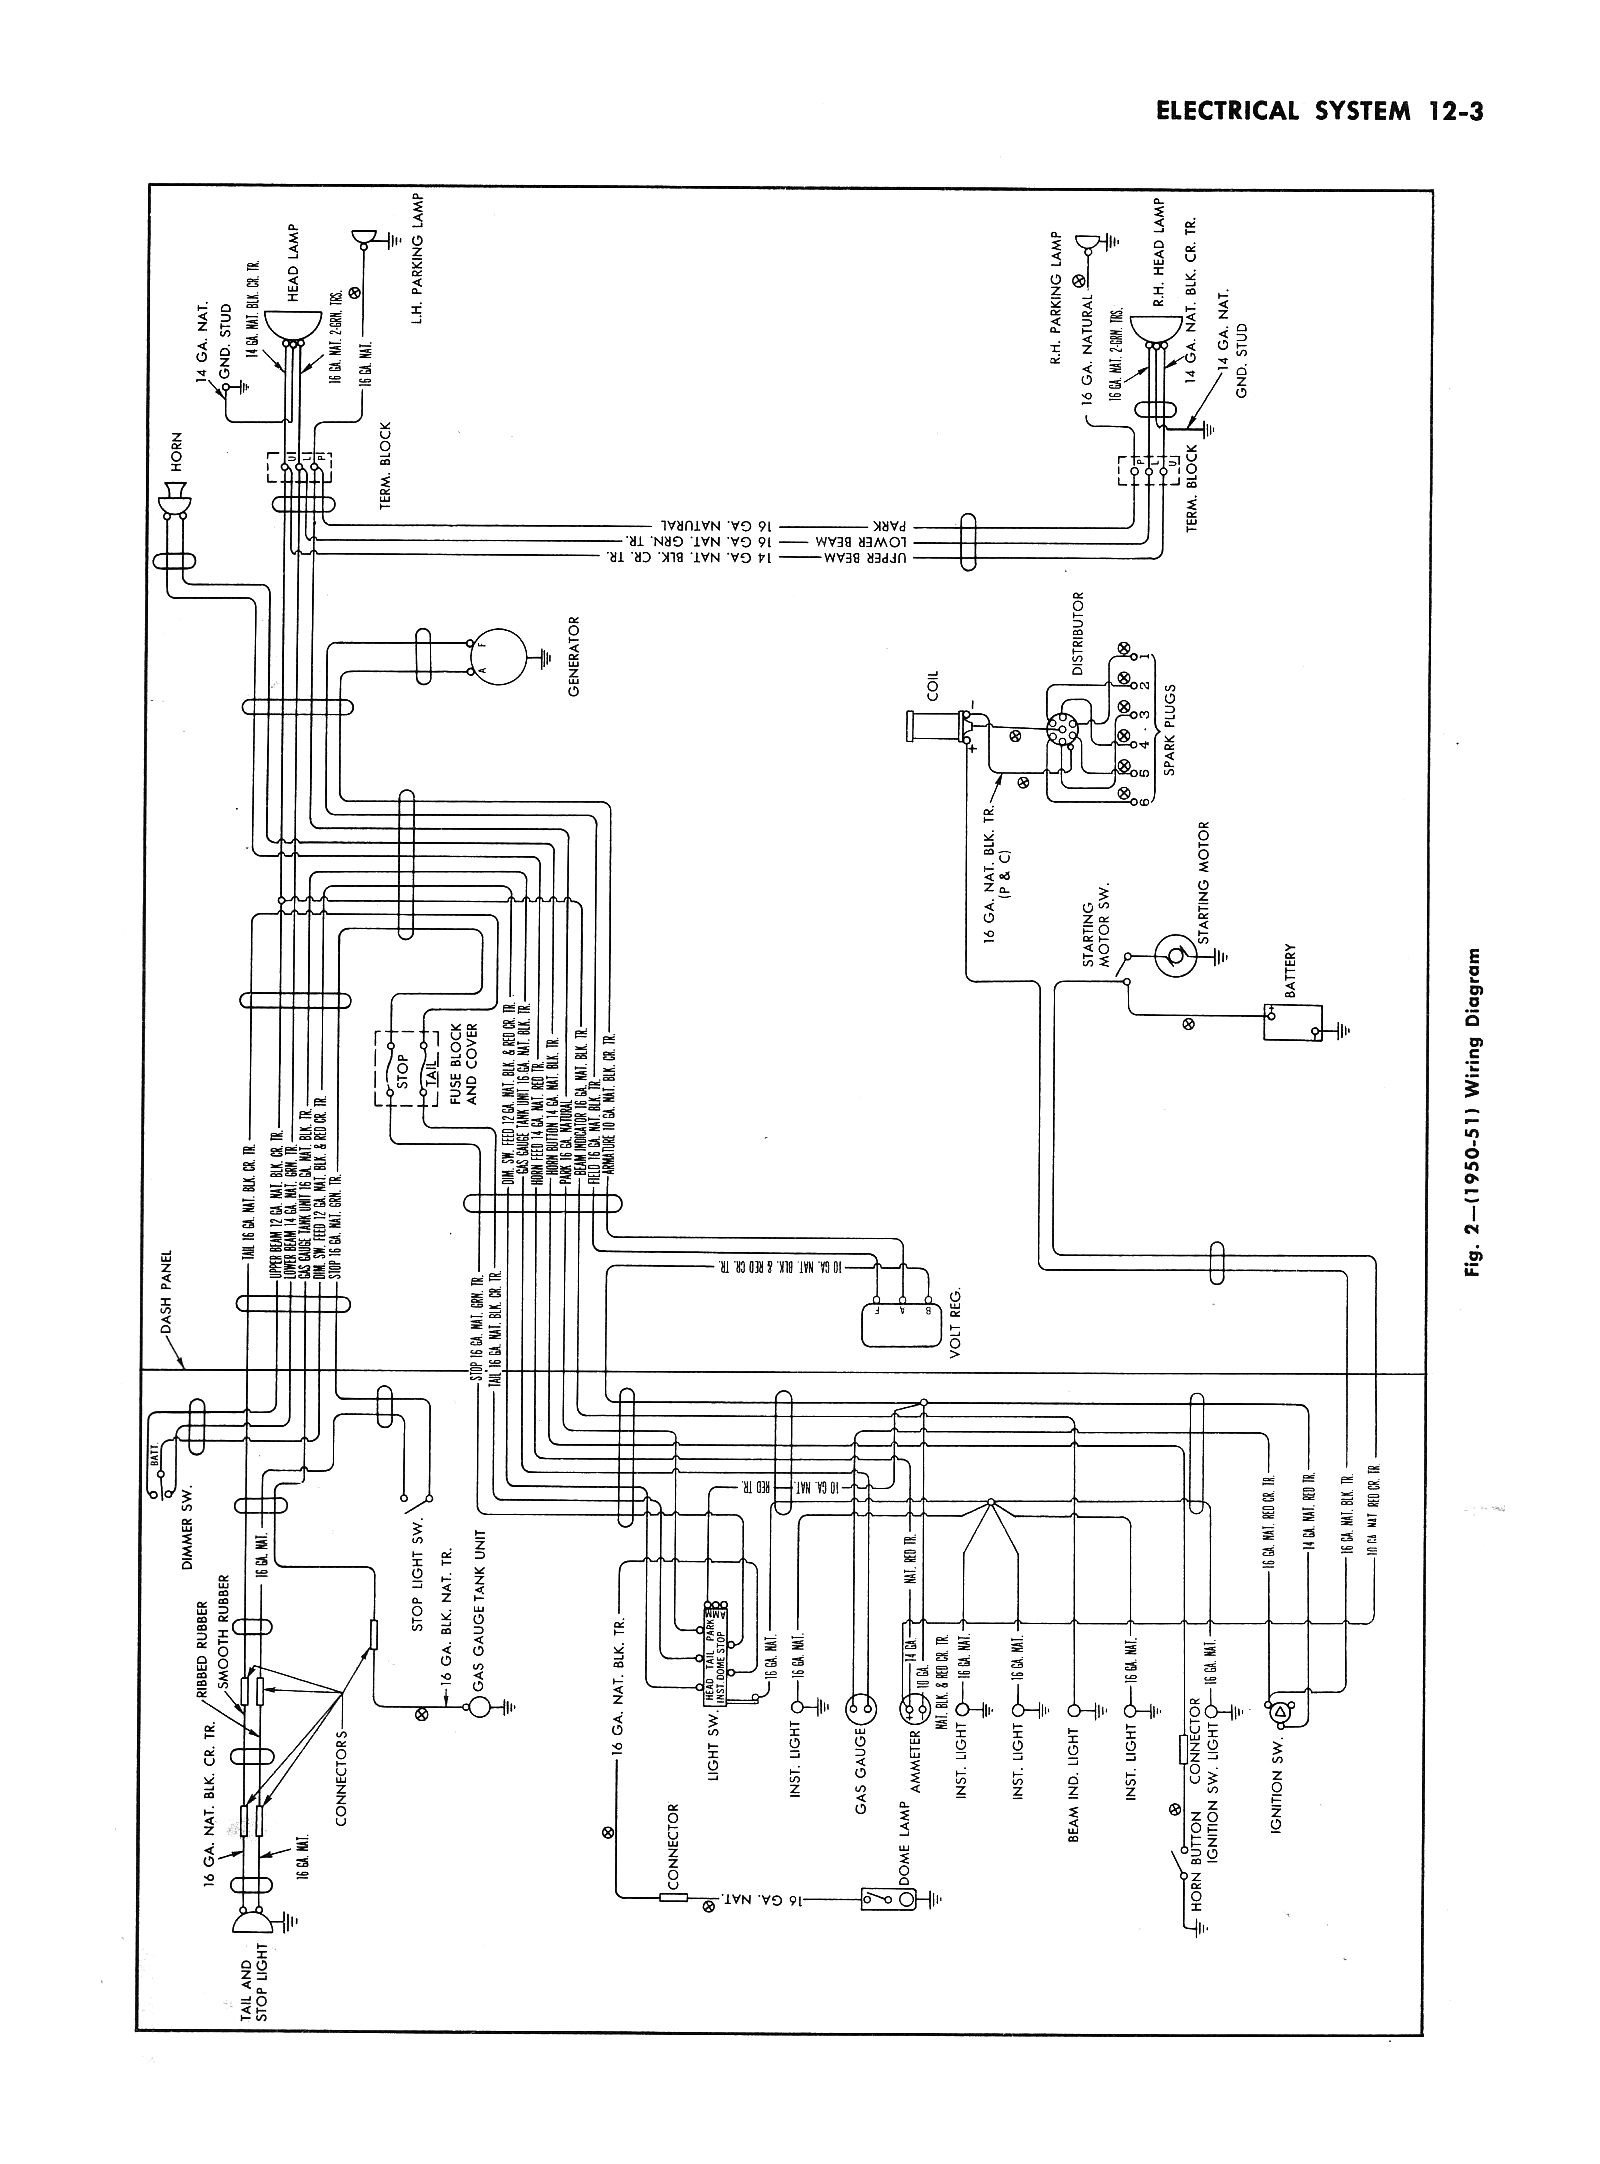 50ctsm1203 chevy wiring diagrams 66 Chevy Headlight Switch Wiring Diagram at pacquiaovsvargaslive.co